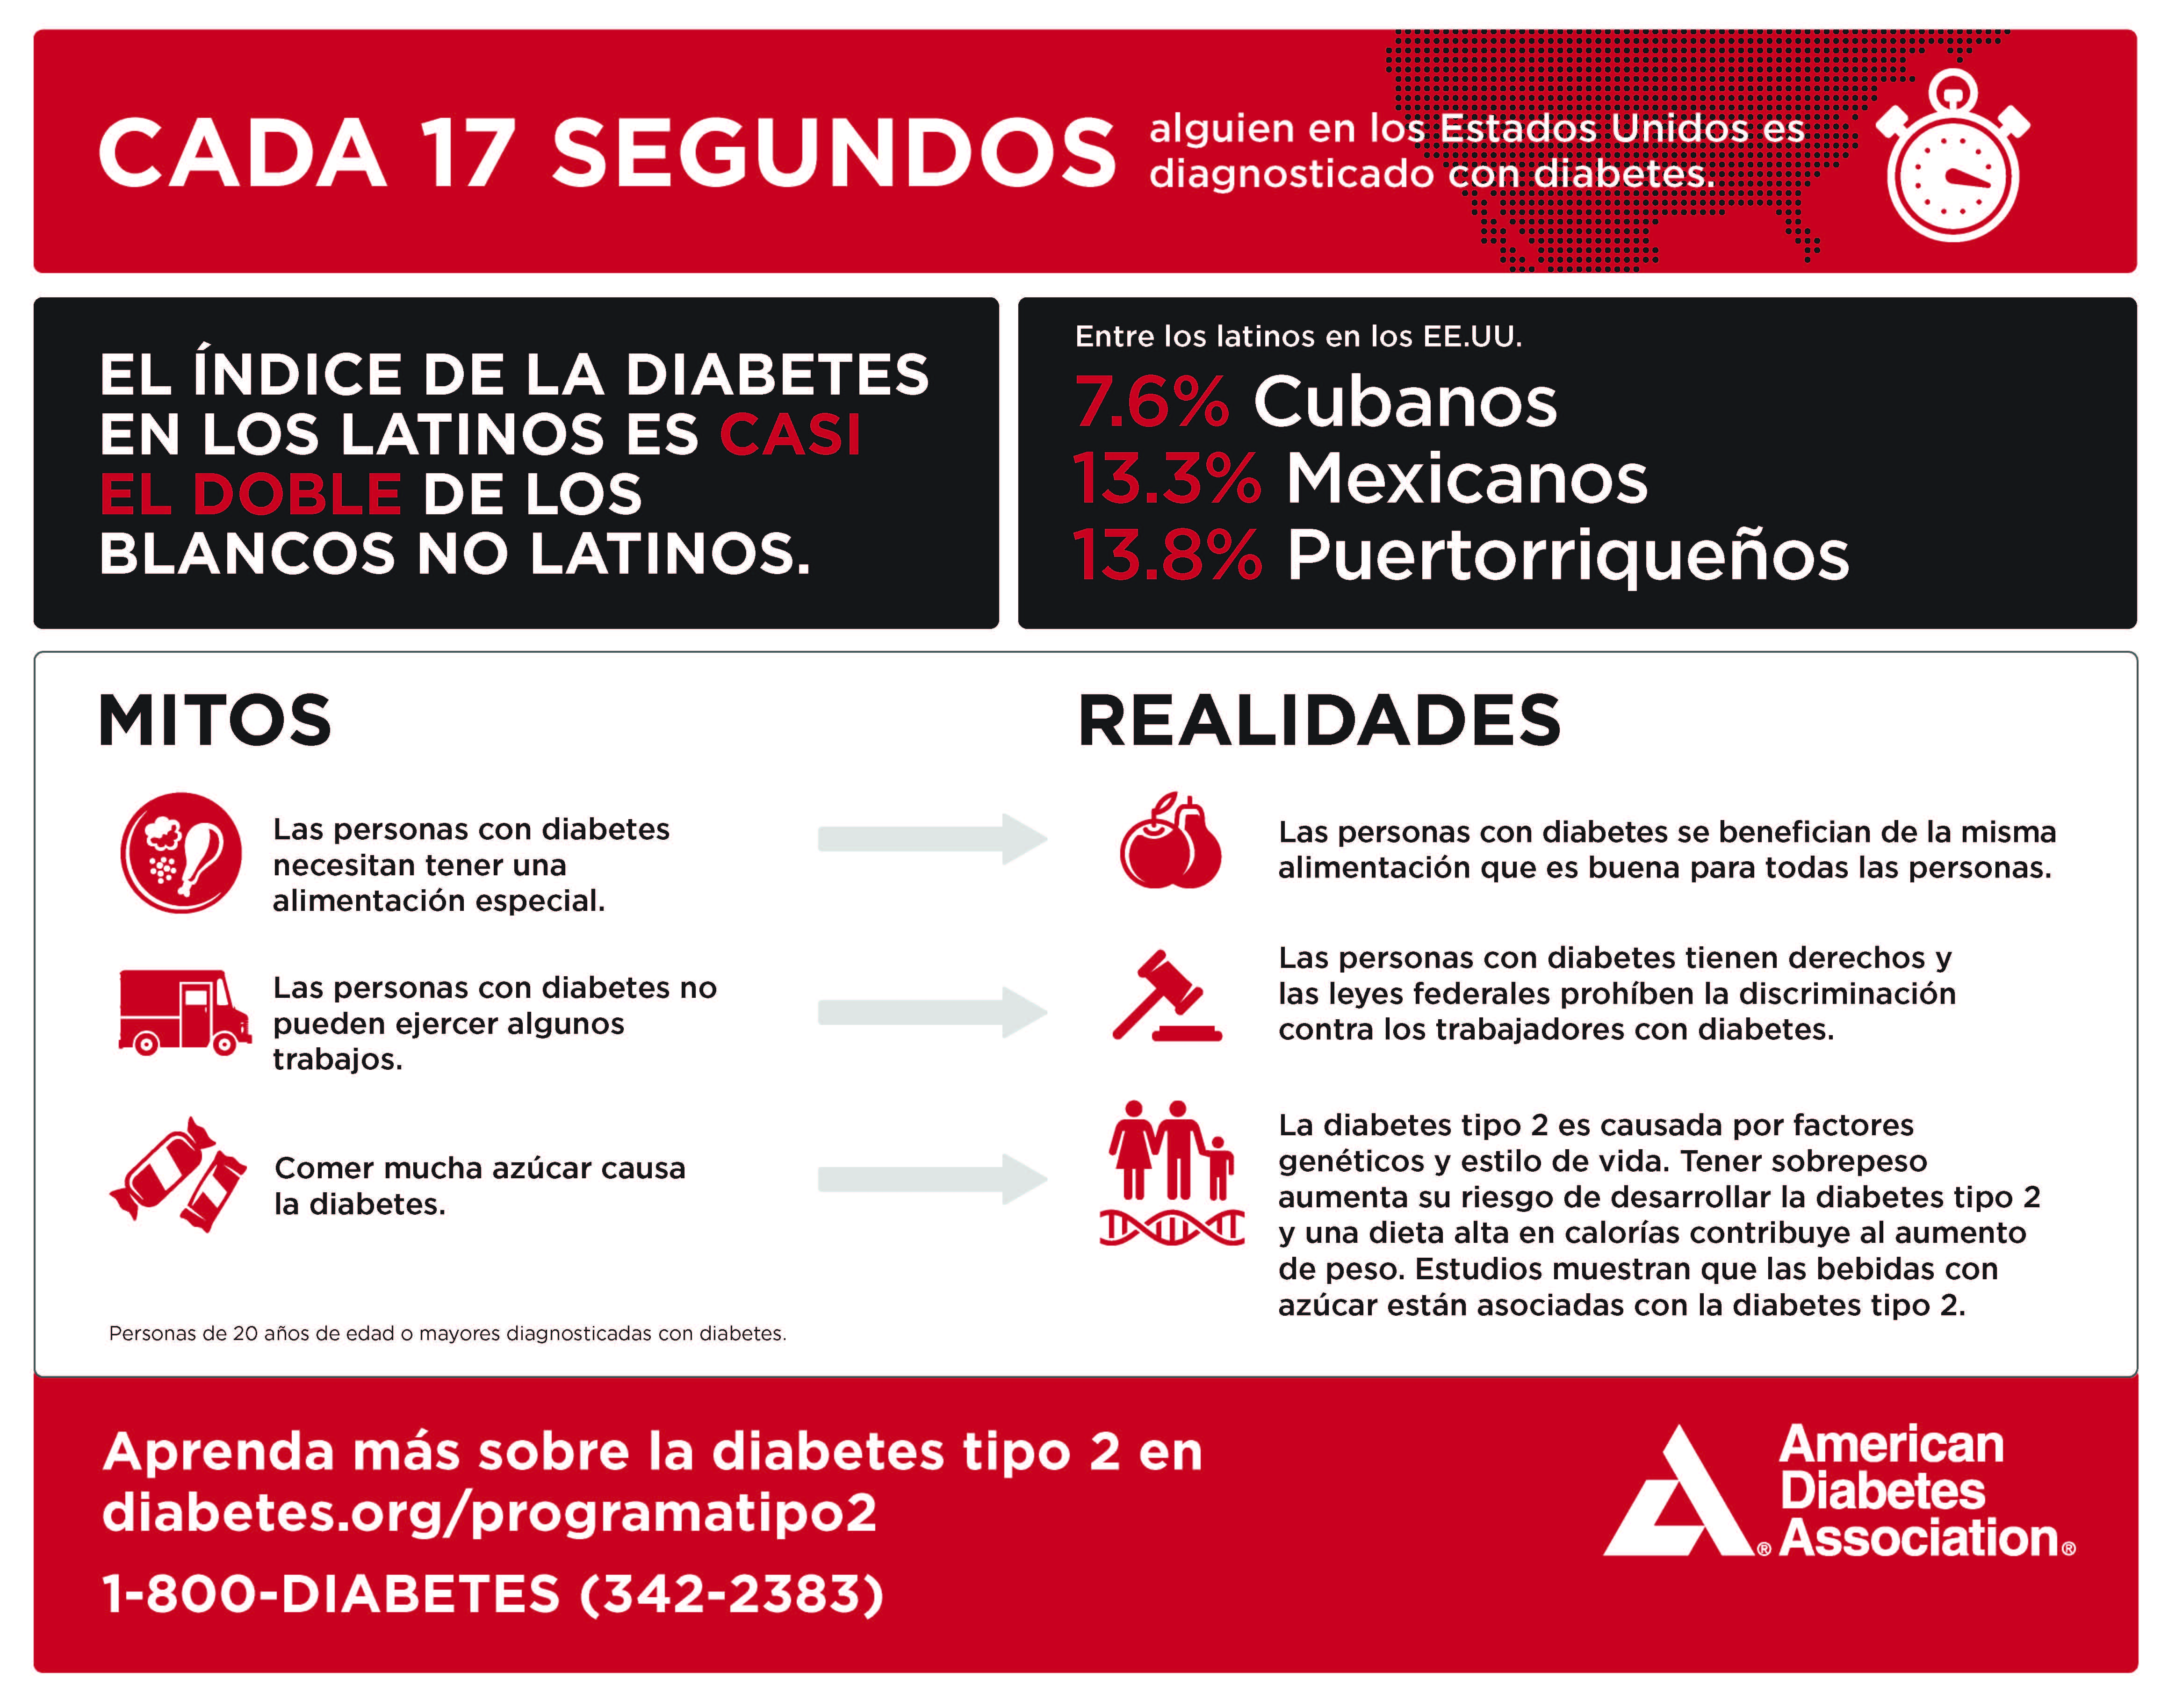 Infographic: Diabetes Myths & Facts (Hispanic Americans